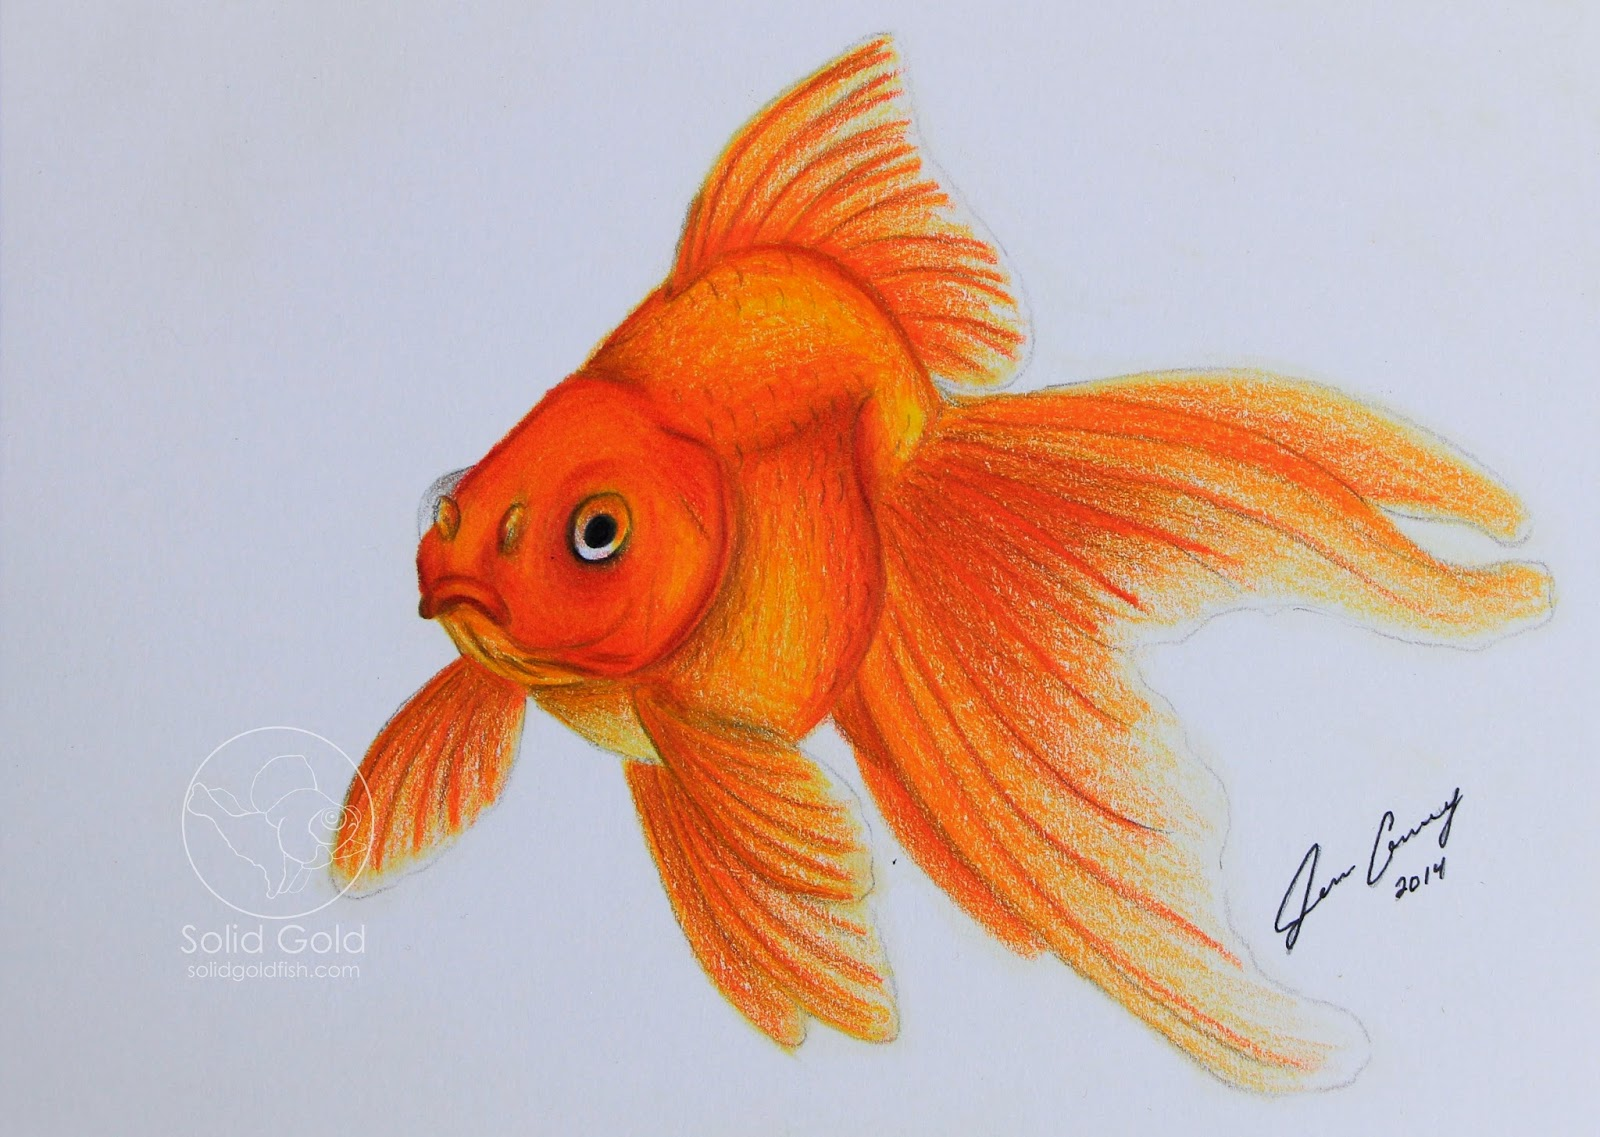 Drawn goldfish fancy goldfish Gold: Red Solid Gold Fantail